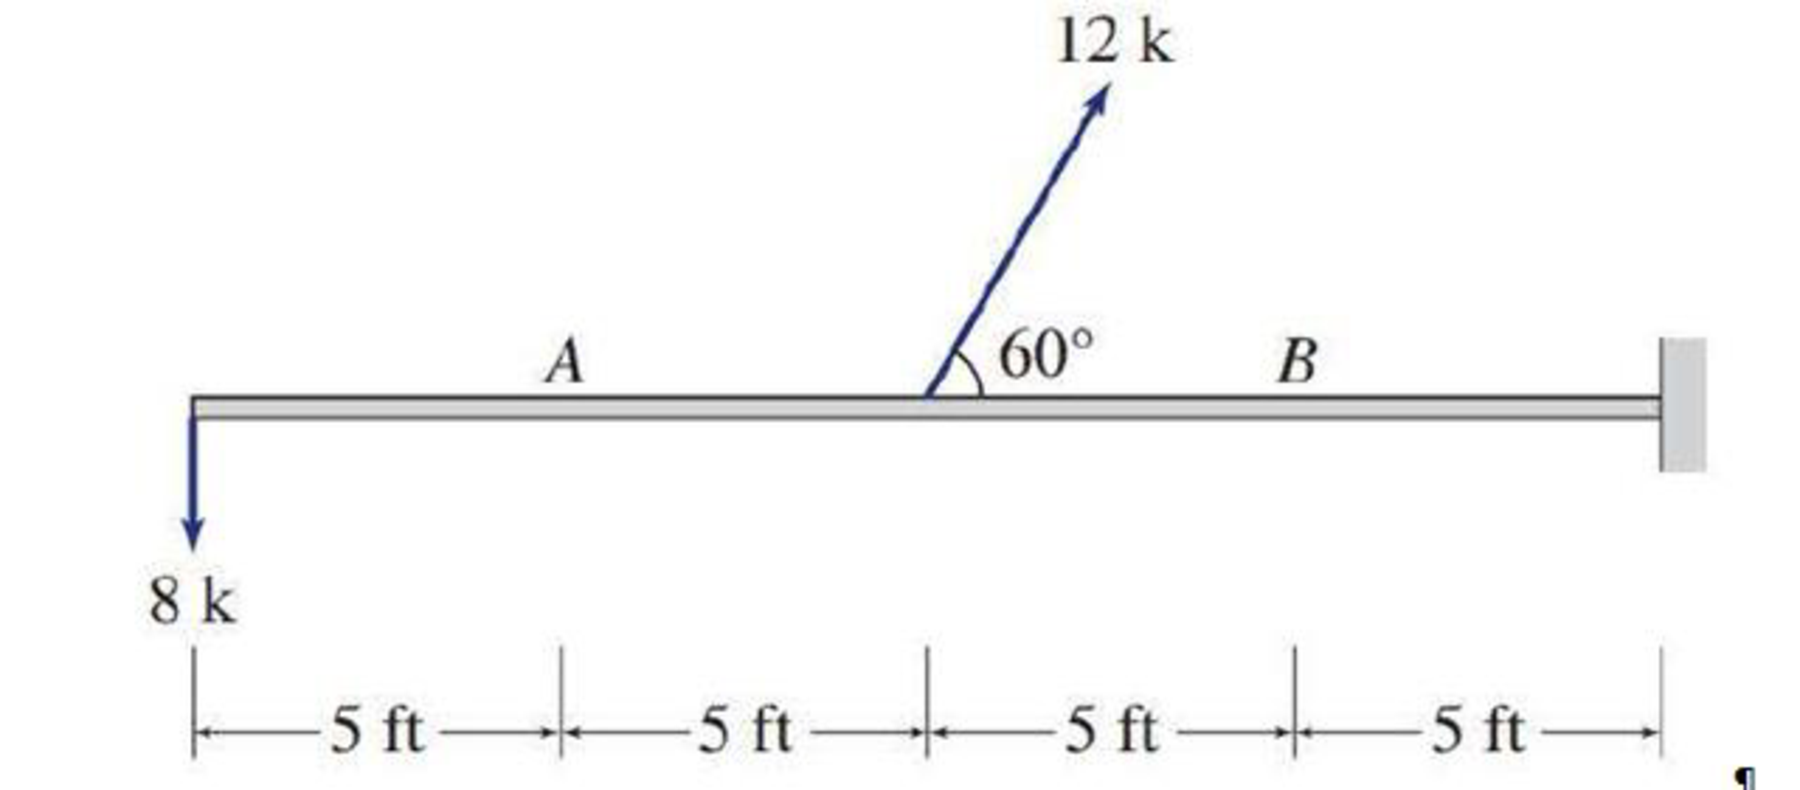 Chapter 5, Problem 2P, Determine the axial forces, shears, and bending moments at points A and B of the structure shown.